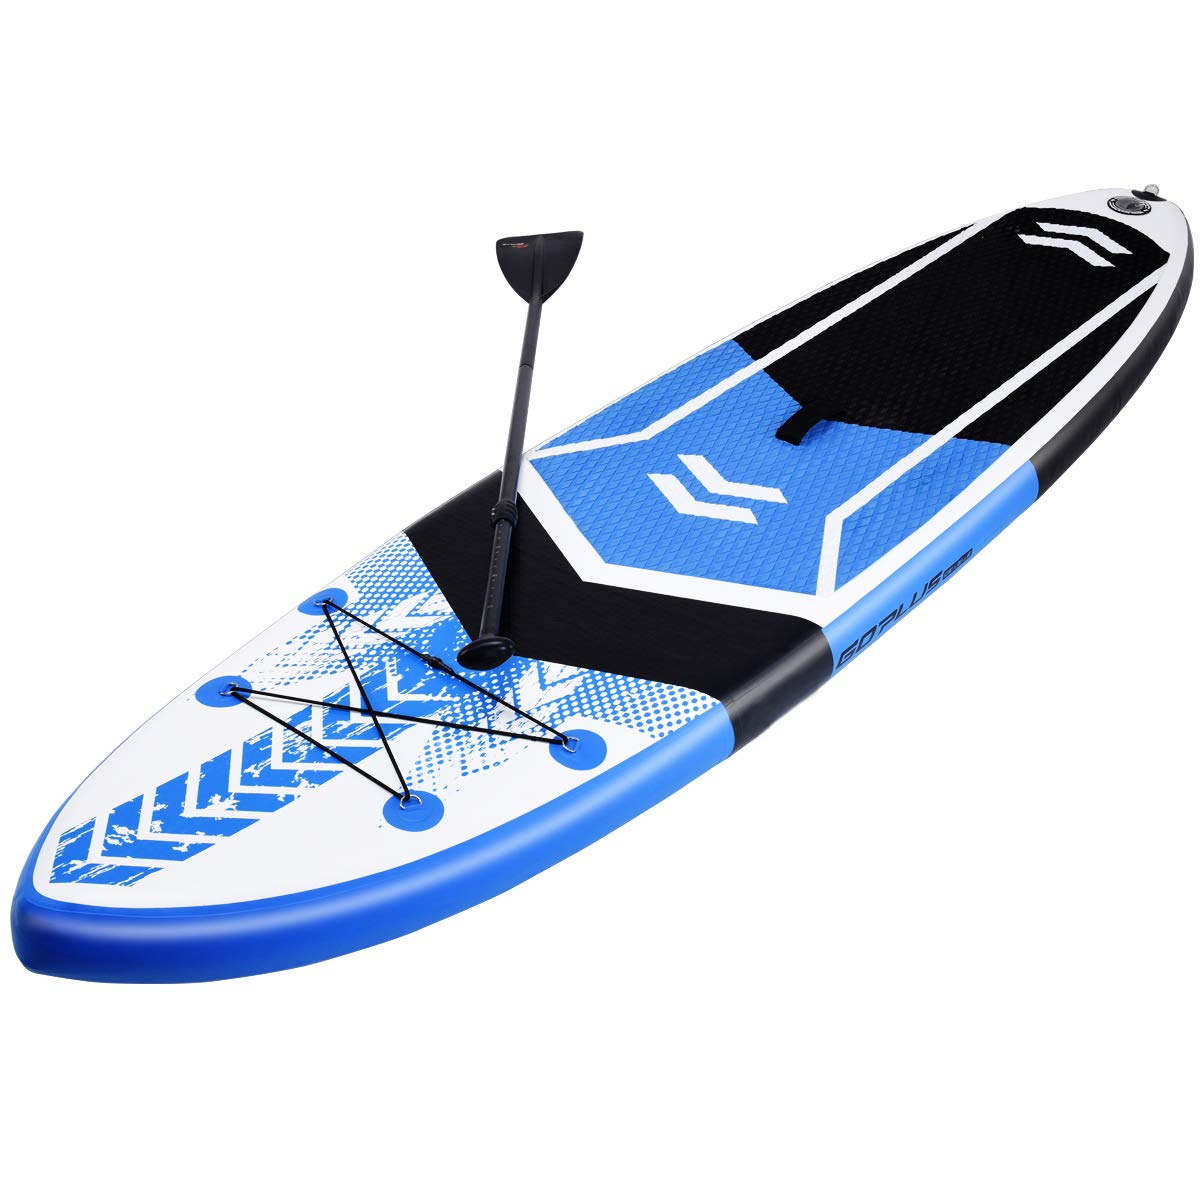 Amazon.com : GYMAX Paddle Board, 10.5 Inflatable Stand Up ...